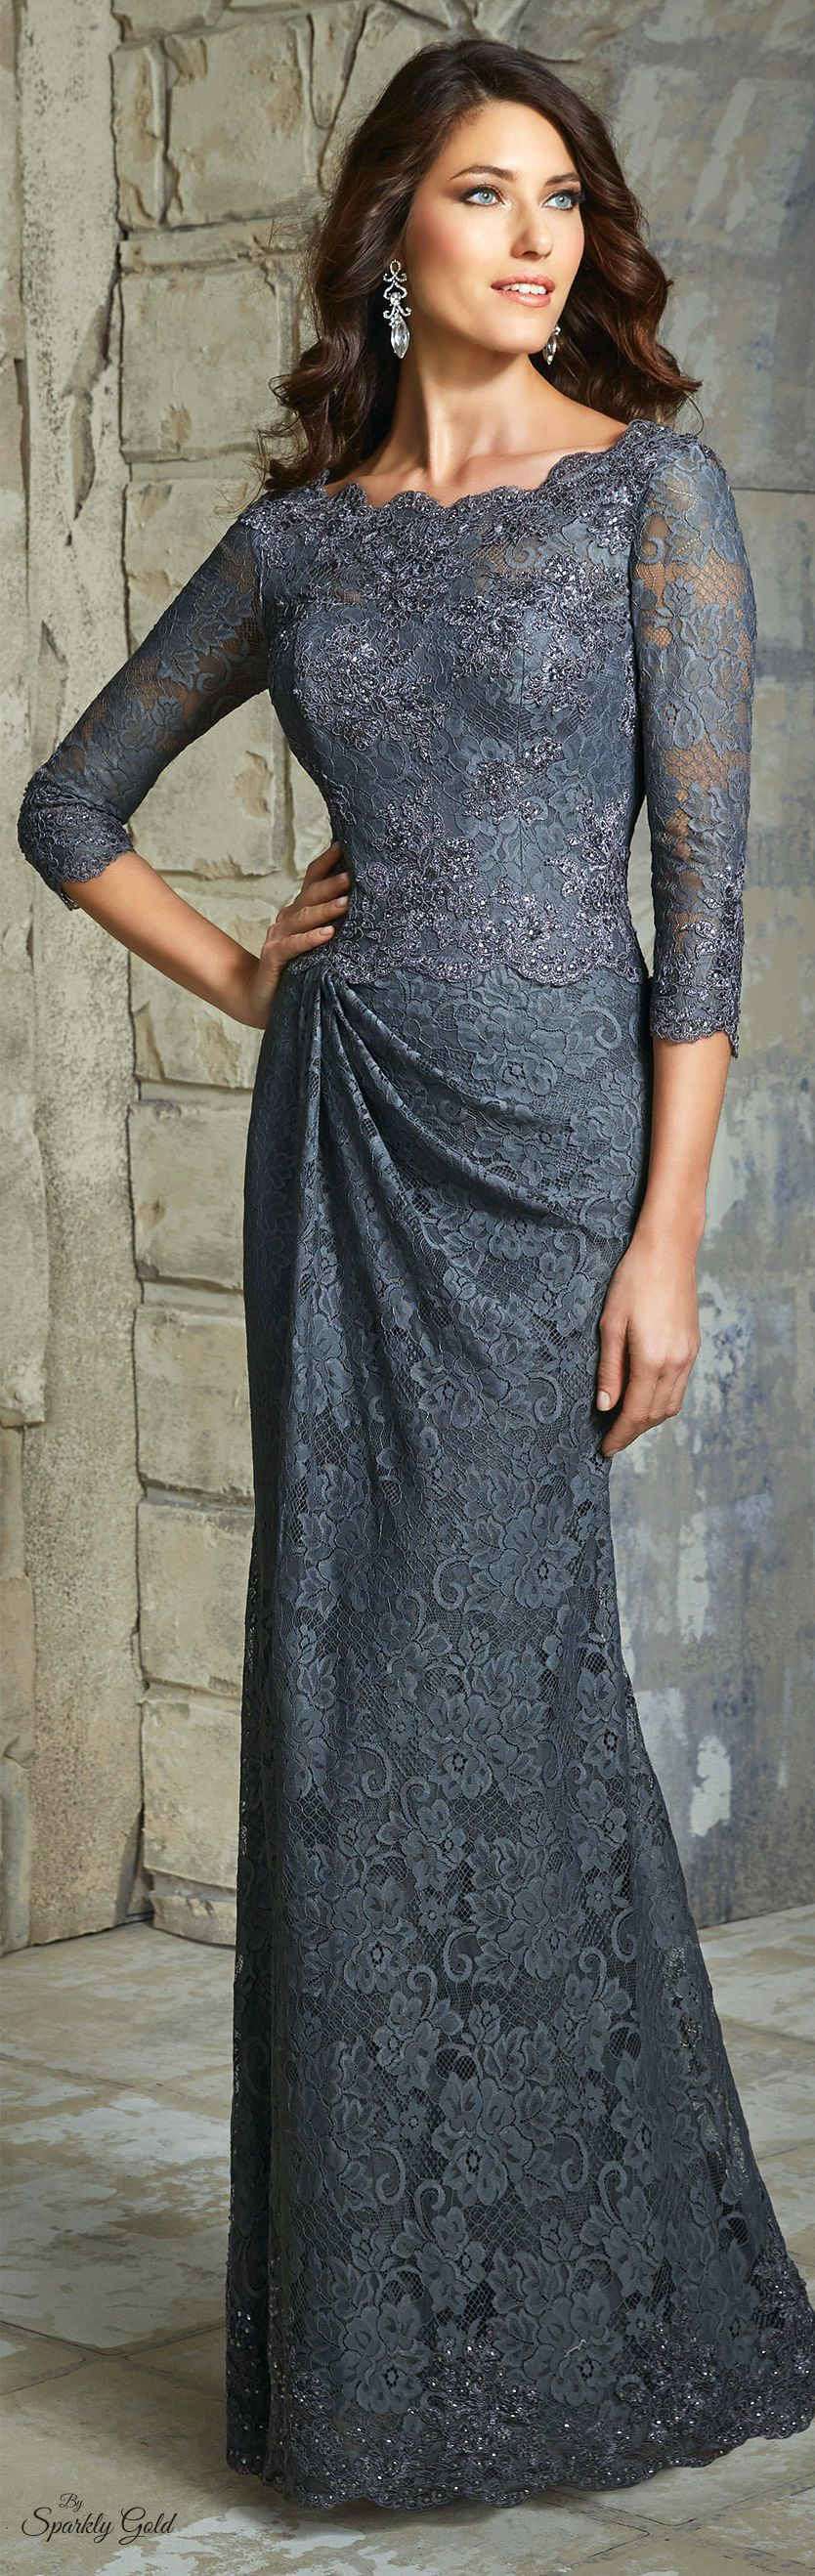 VM gray maxi lace dress women fashion outfit clothing style apparel @roressclothes closet ideas